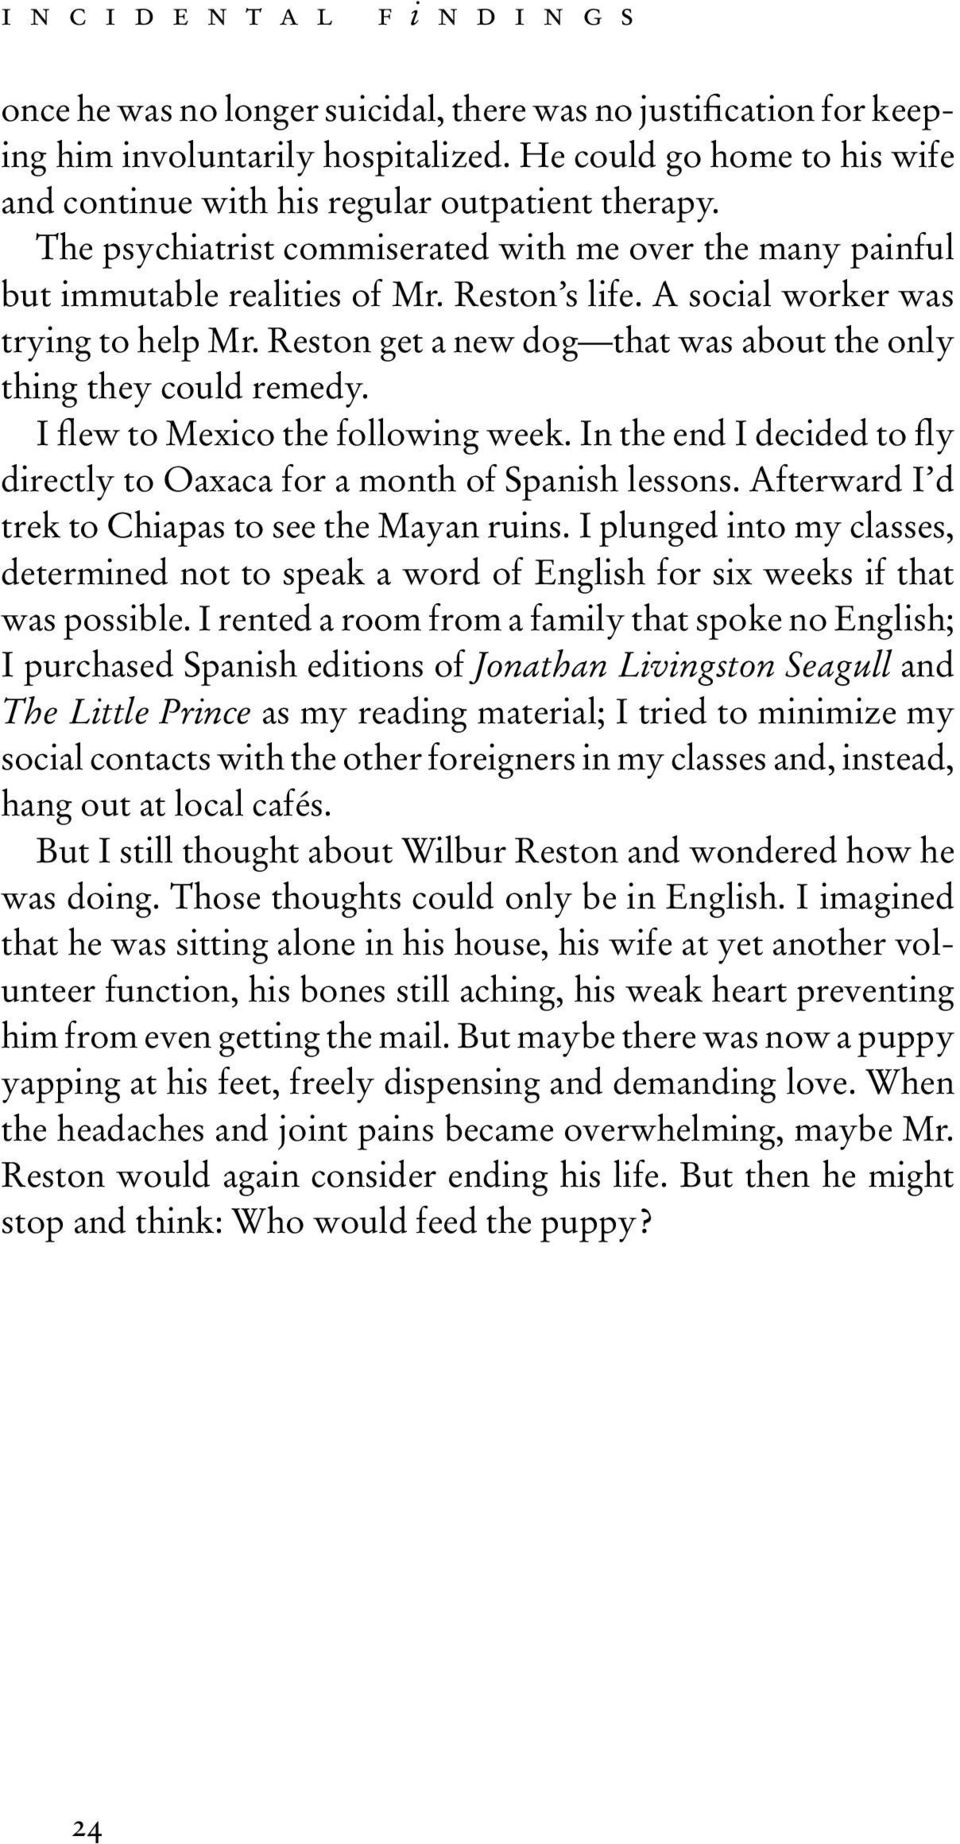 A social worker was trying to help Mr. Reston get a new dog that was about the only thing they could remedy. I flew to Mexico the following week.